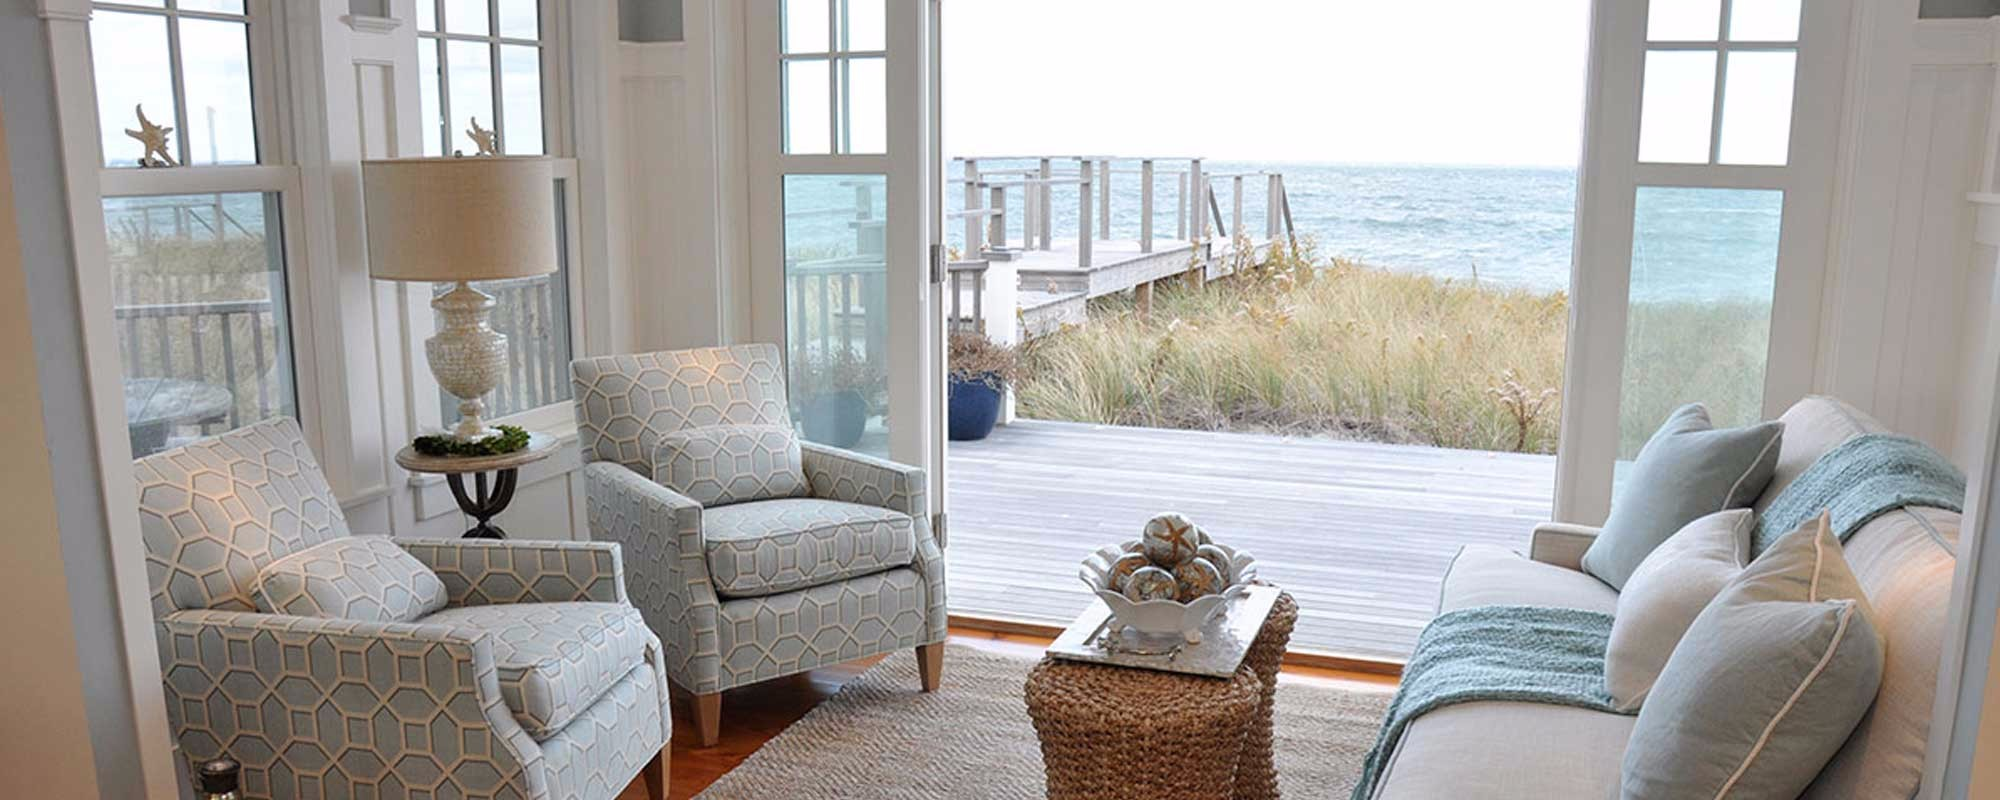 seaside-interior-design